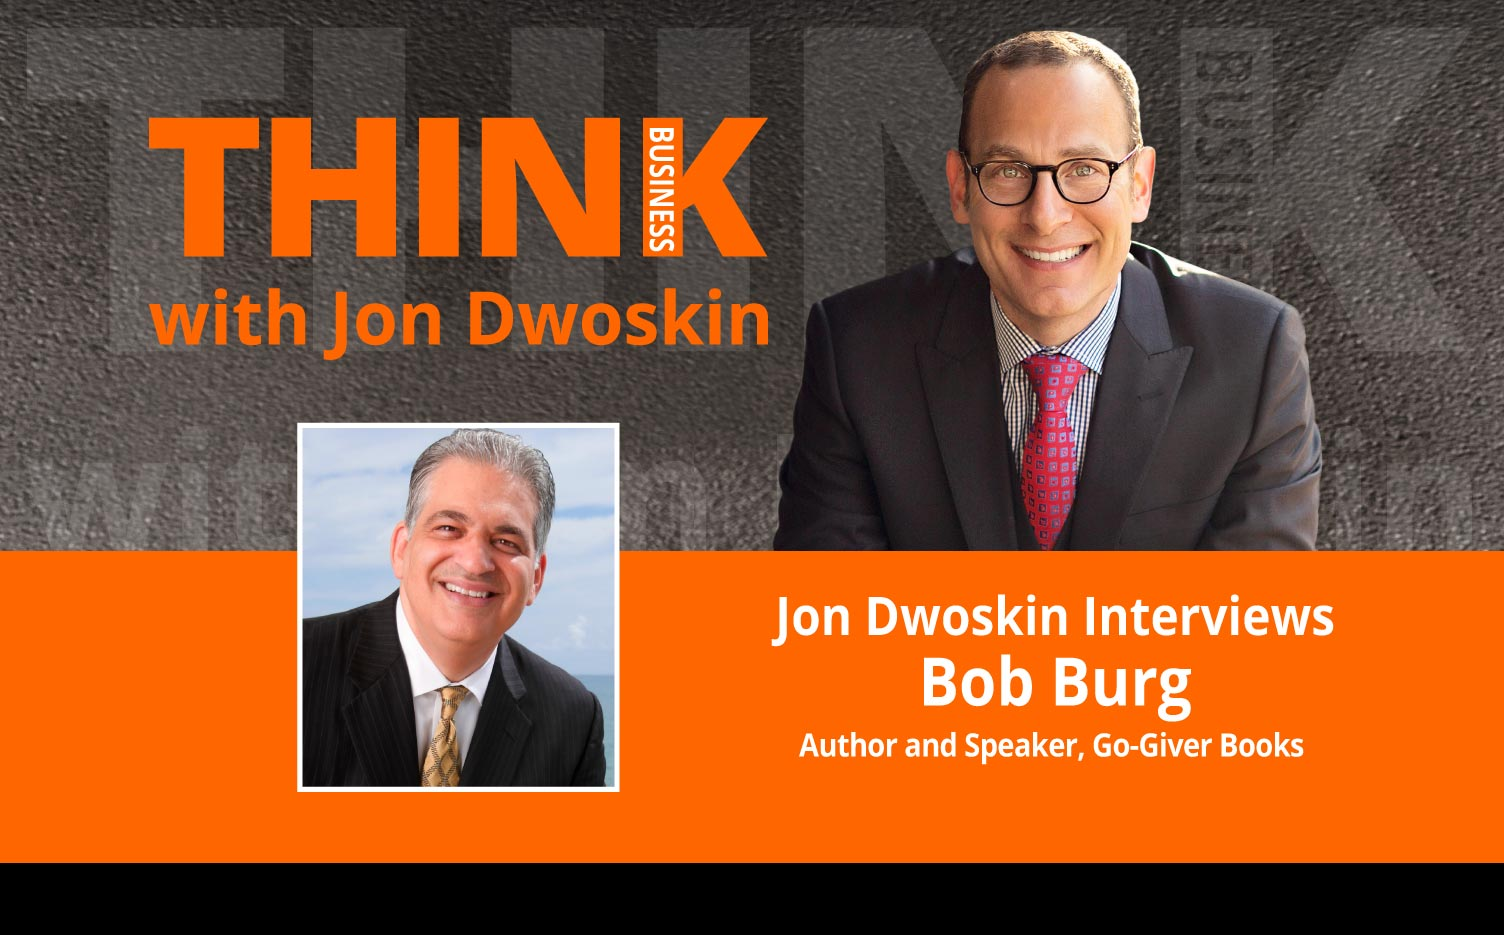 THINK Business Podcast: Jon Dwoskin Interviews Bob Burg, Author and Speaker, Go-Giver Books